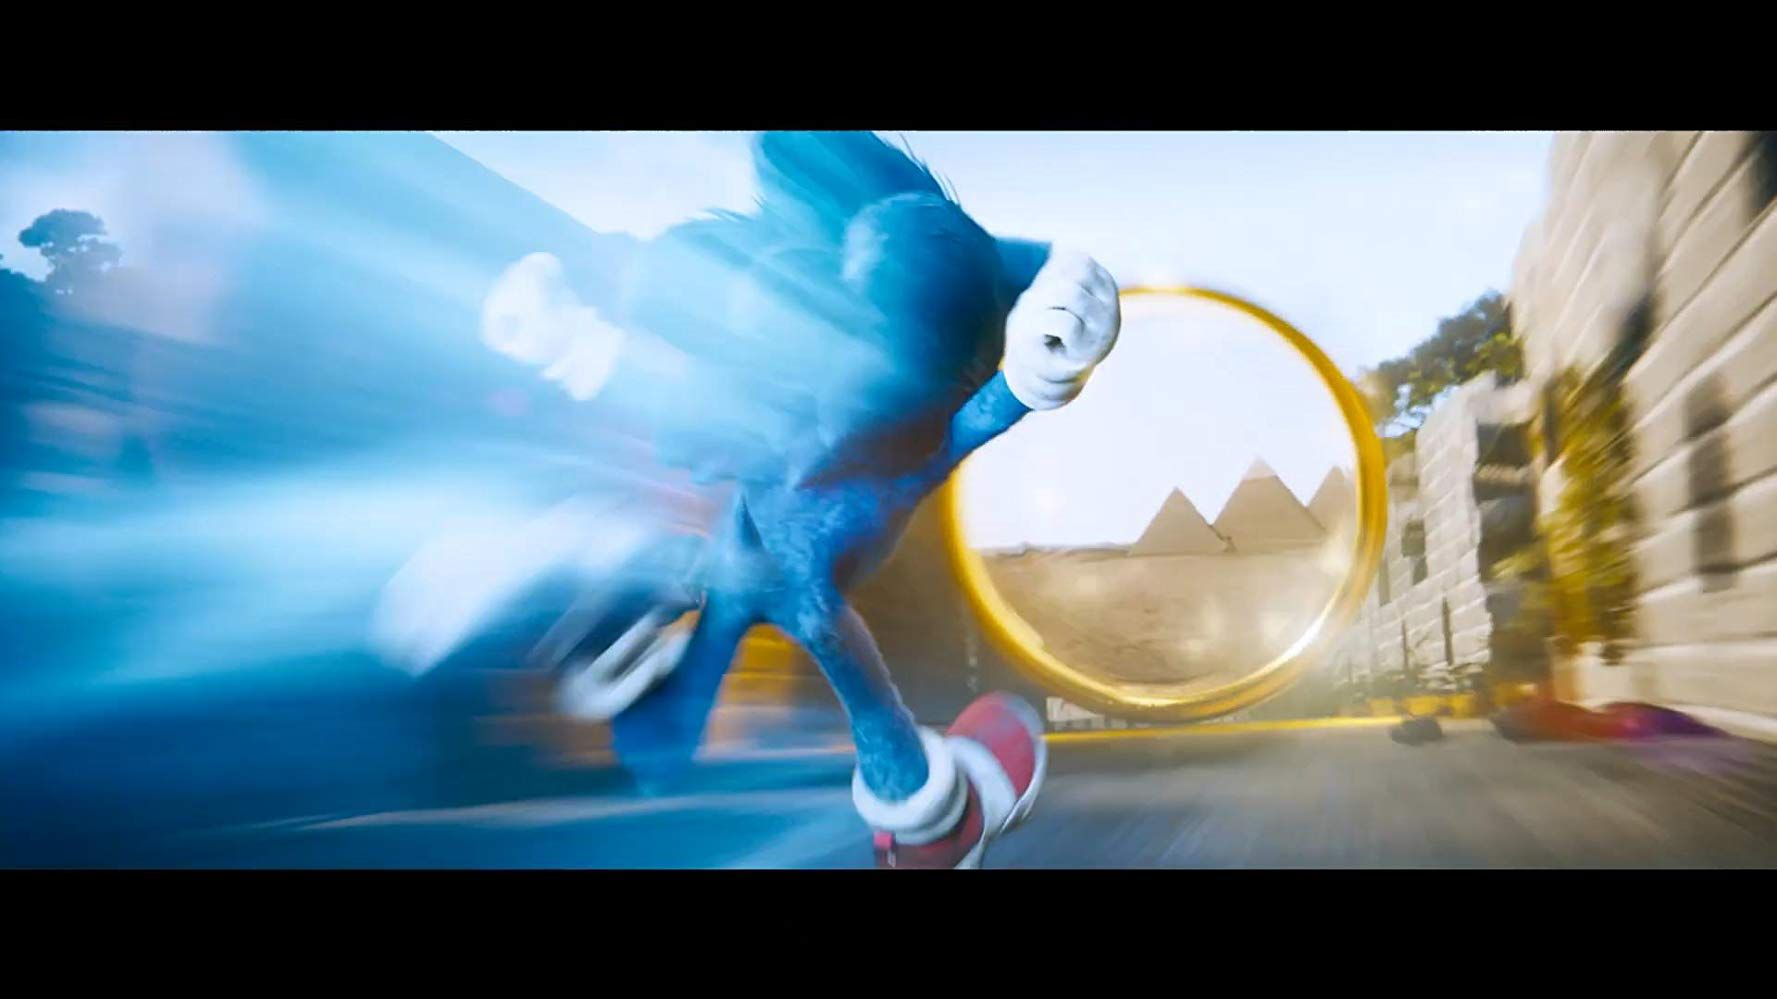 123movies Sonic The Hedgehog Full Online Free Hedgehog Movie Sonic The Hedgehog Sonic